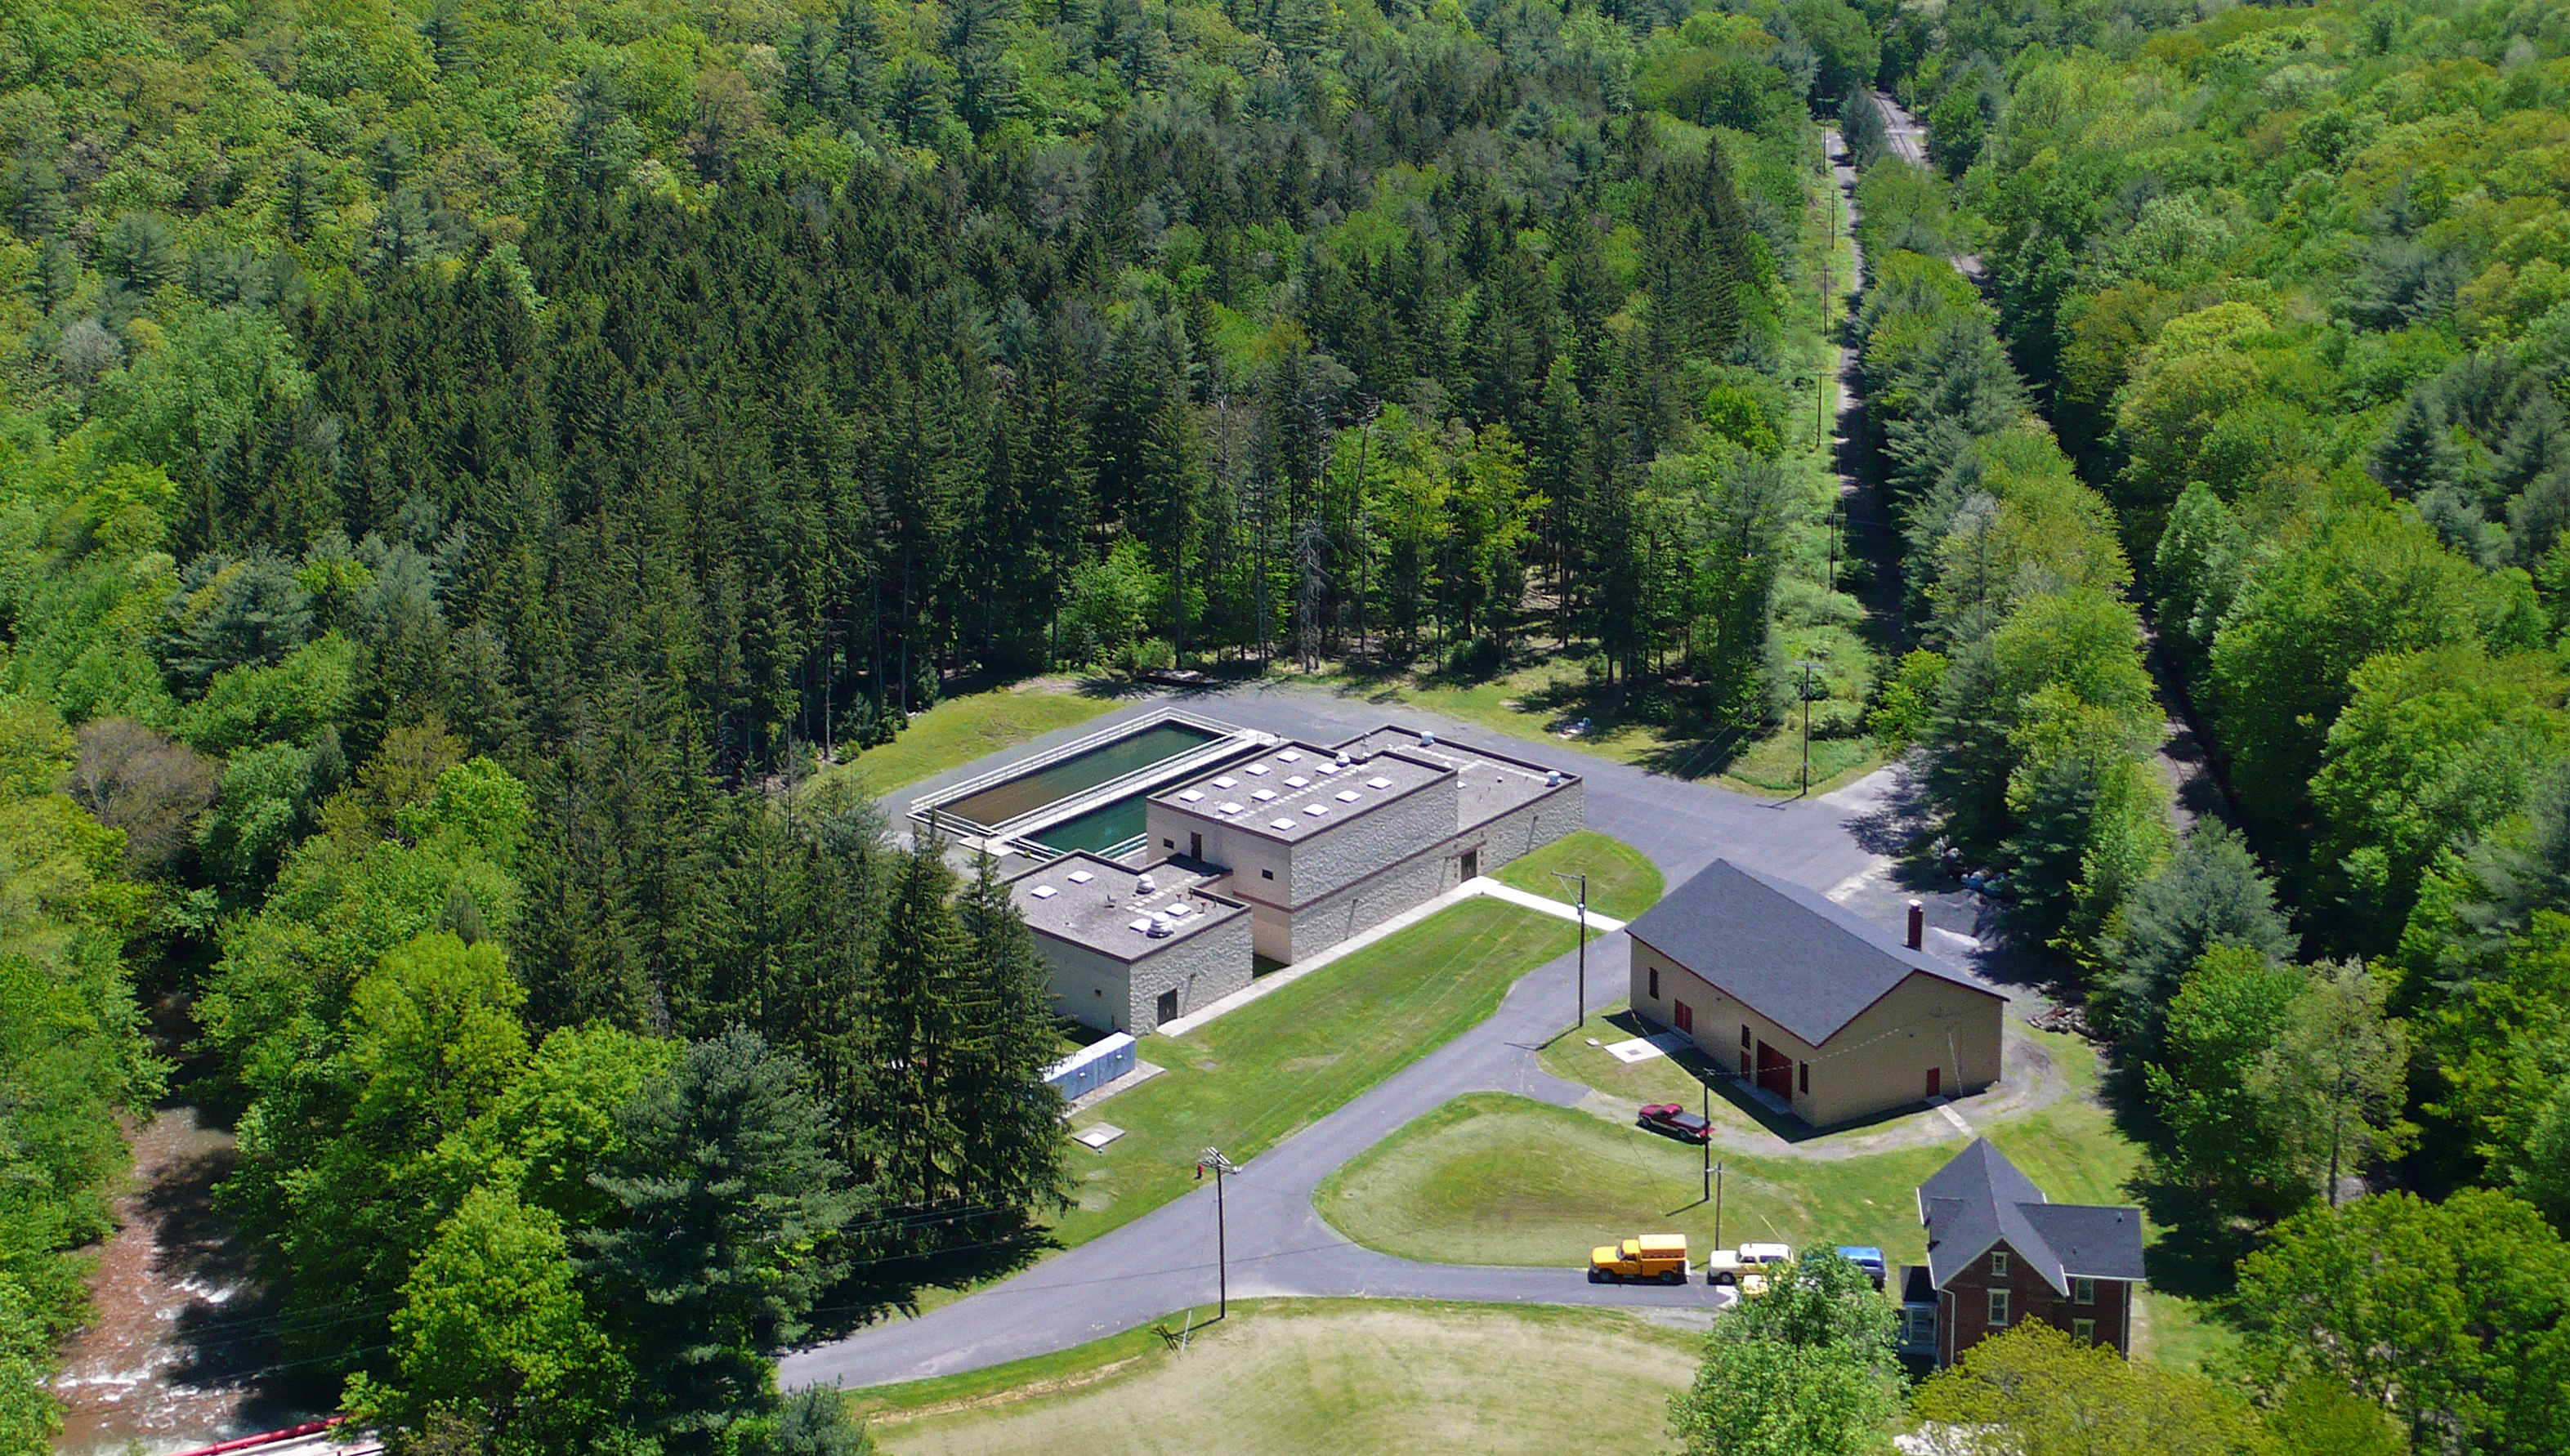 Indian Run Water Filtration and Treatment Facility